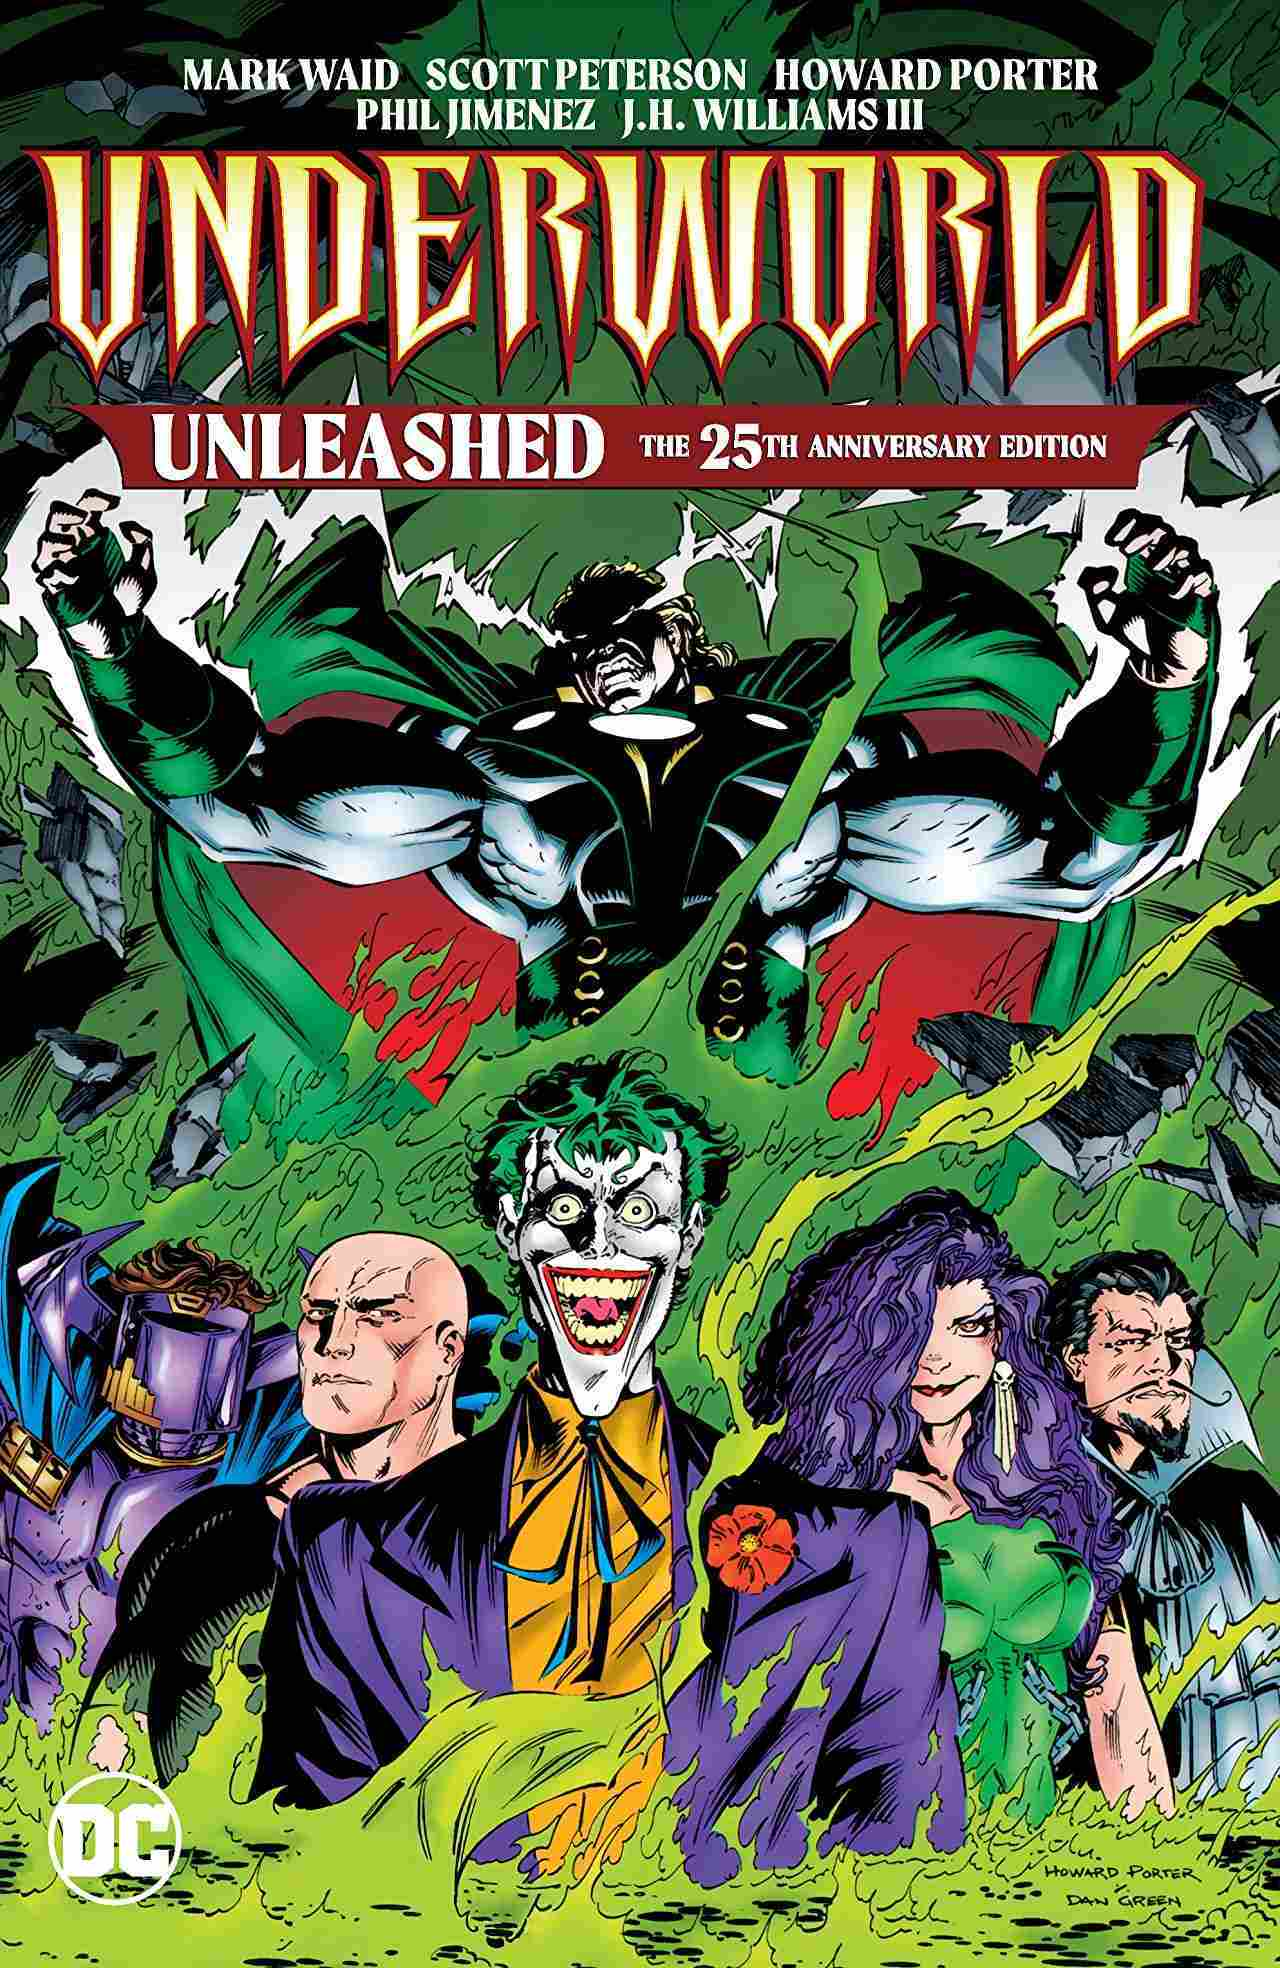 Underworld Unleashed The 25th Anniversary Edition